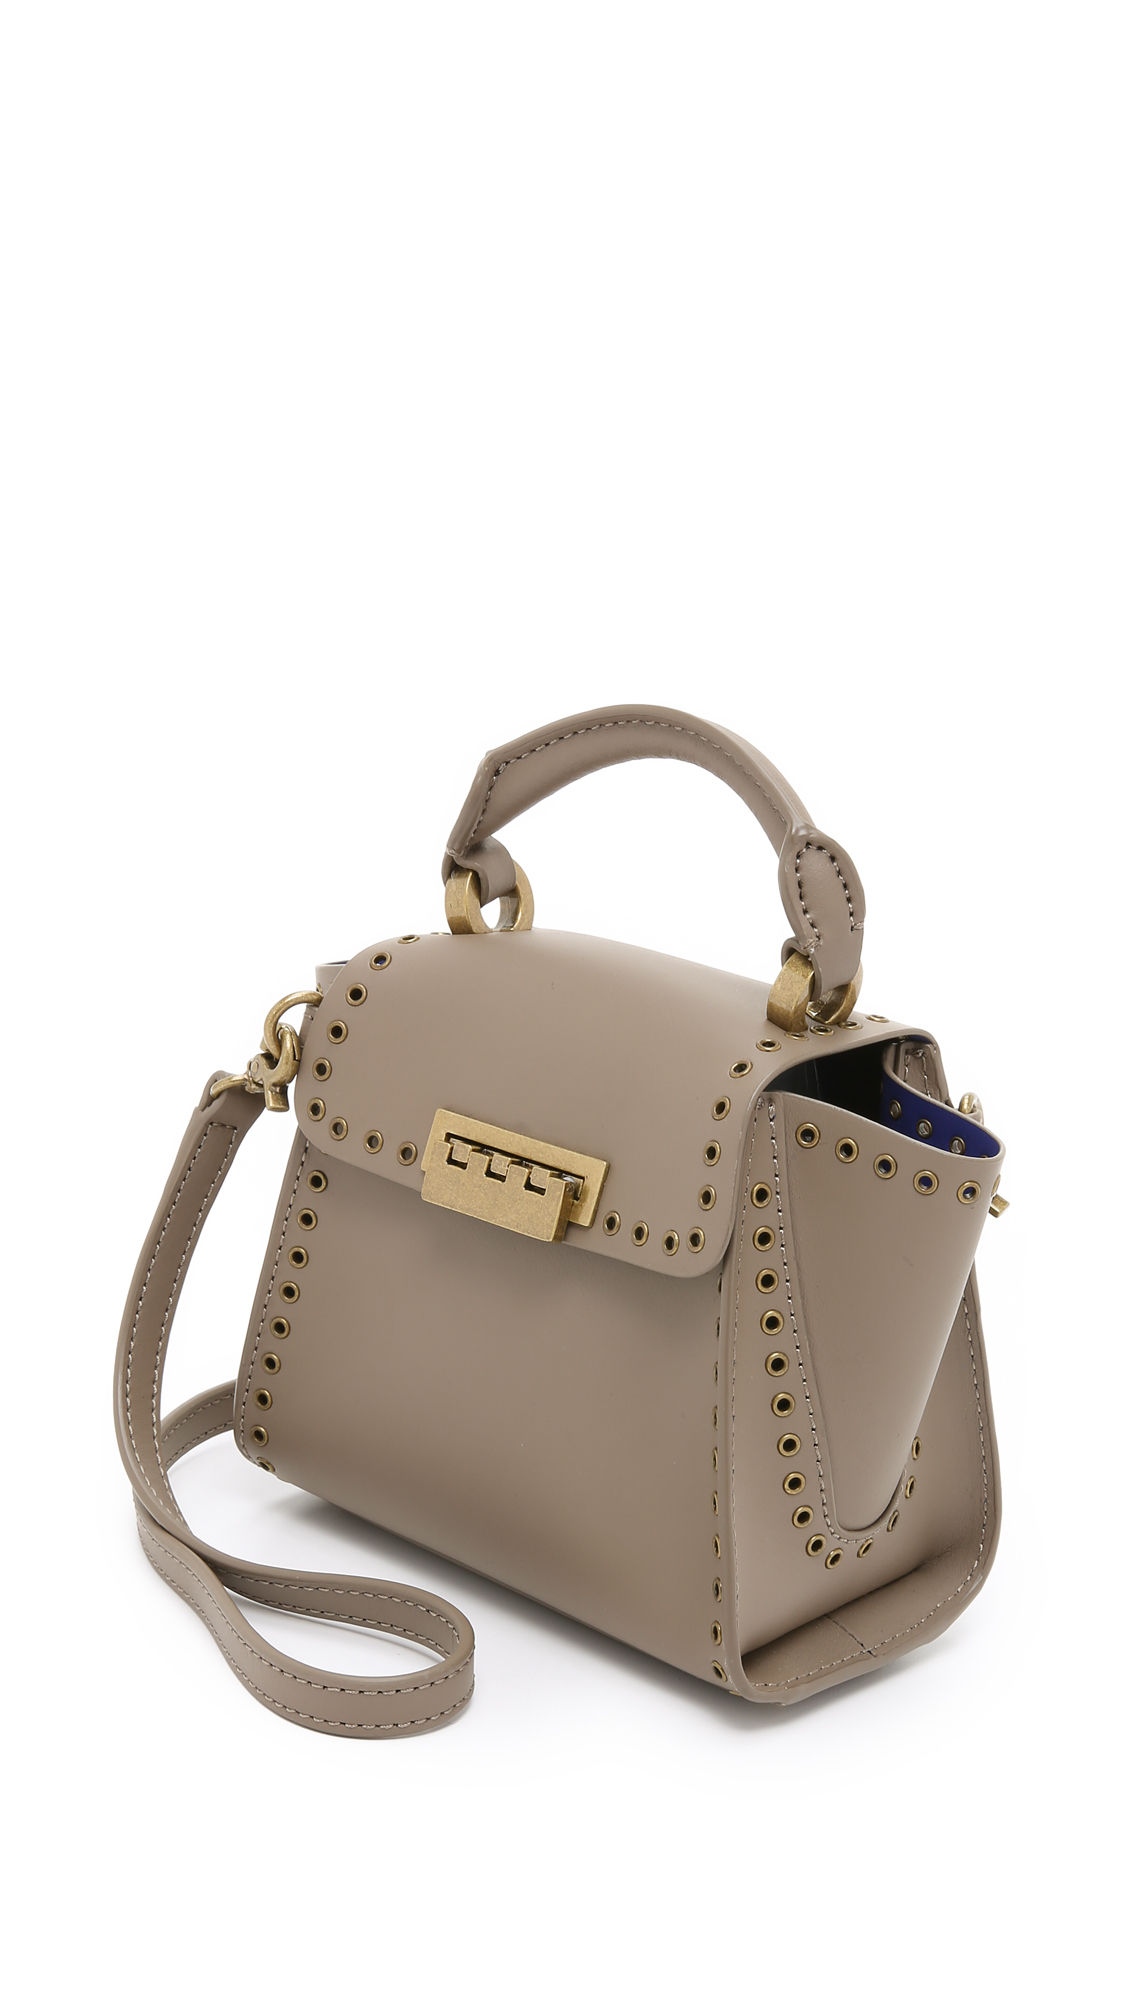 Zac Posen Bag Best